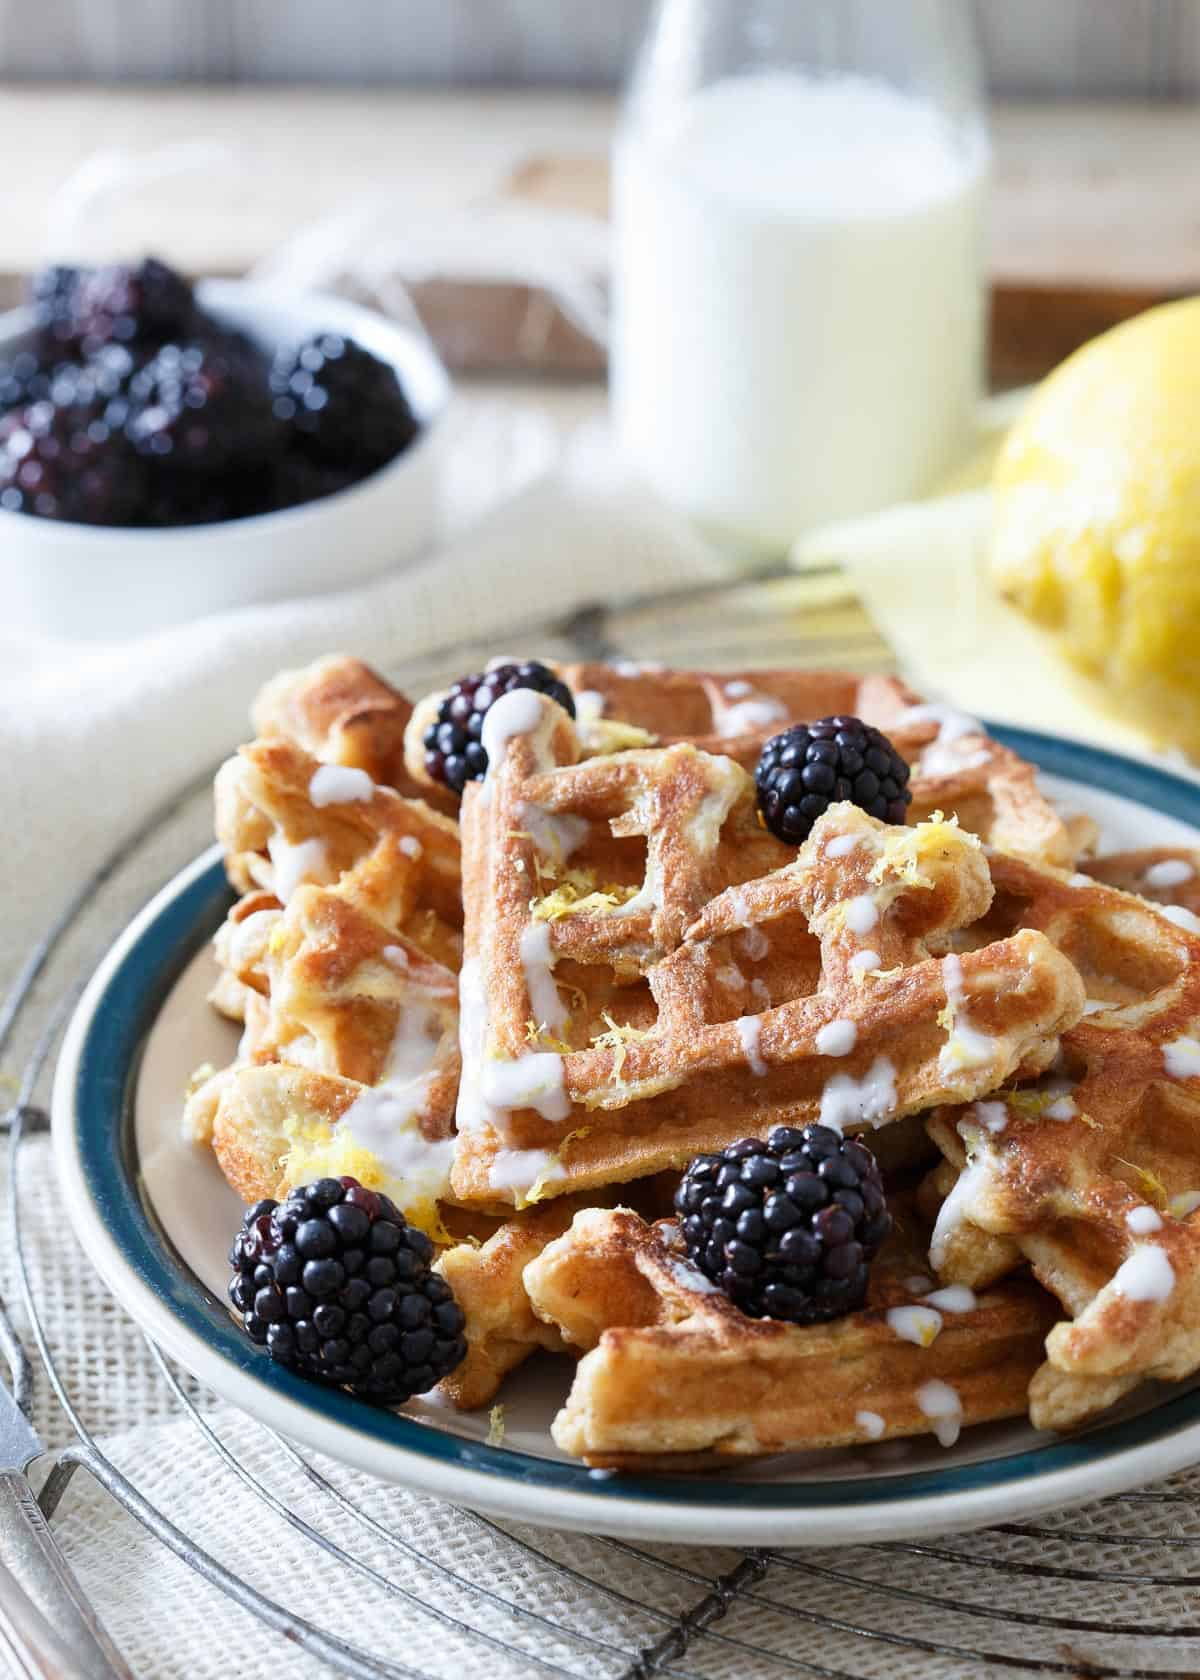 This lemon vanilla waffle French toast takes two of your favorite breakfast foods and combines them into one delicious way to start the day!